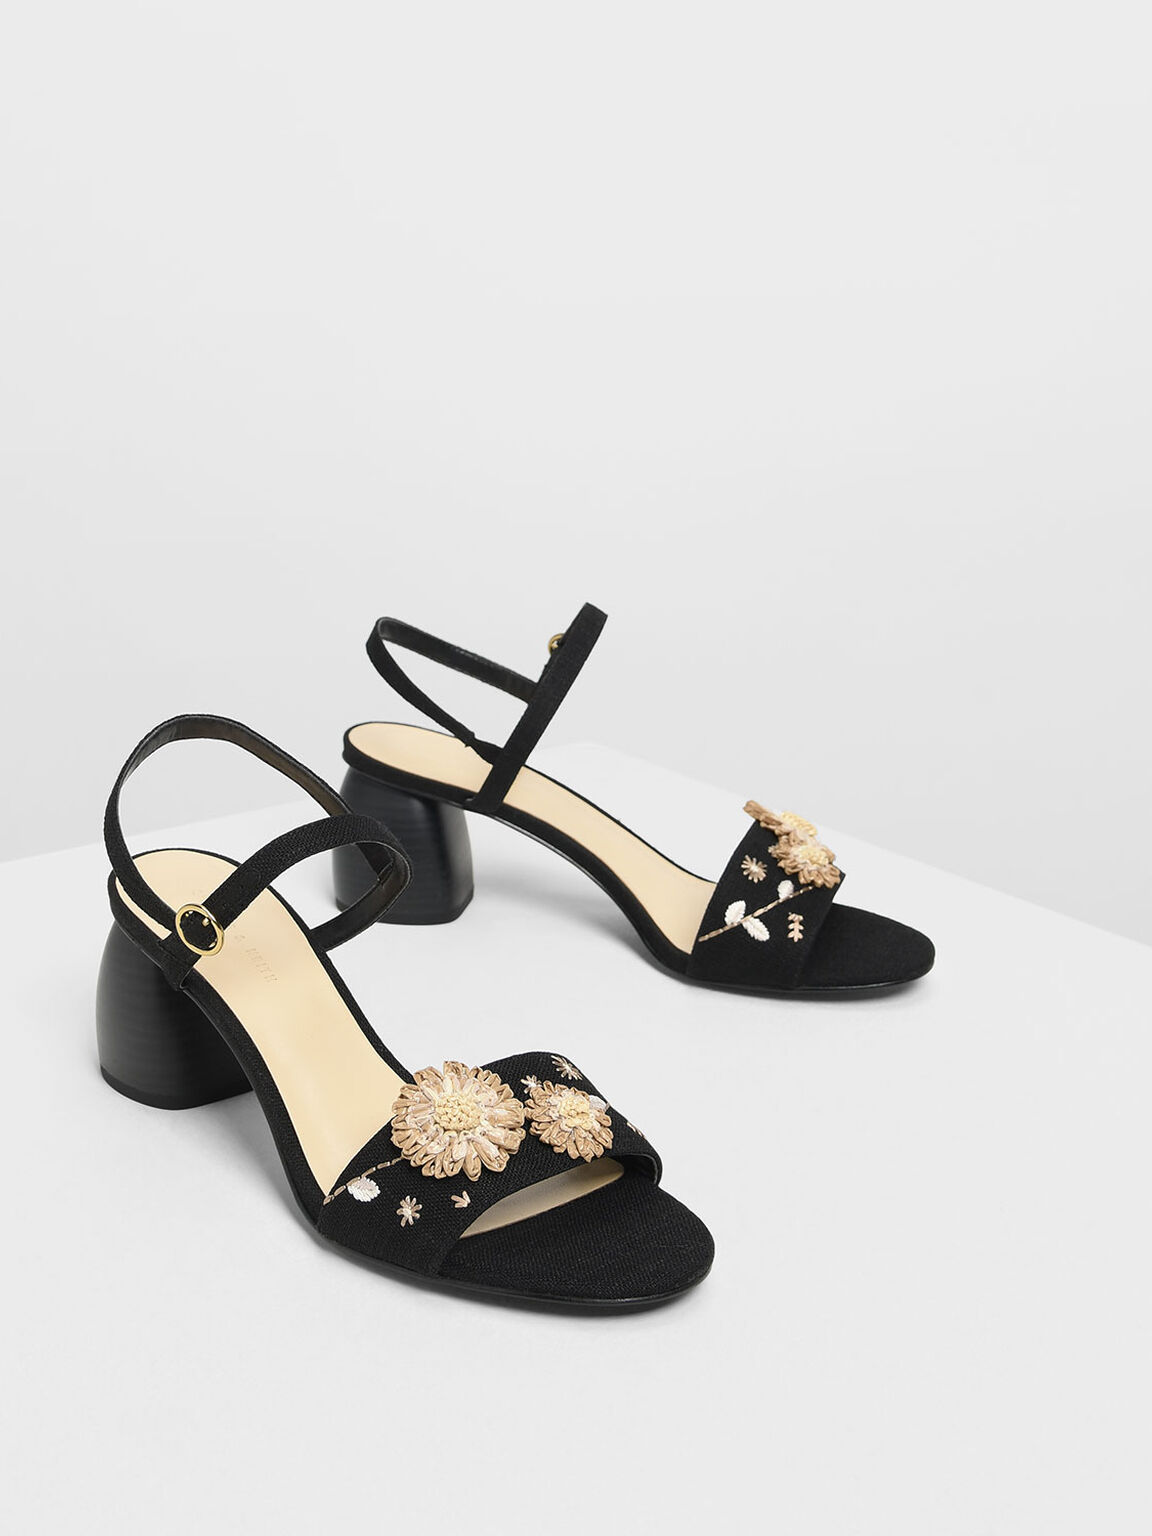 Open Toe Floral Sandals, Black, hi-res